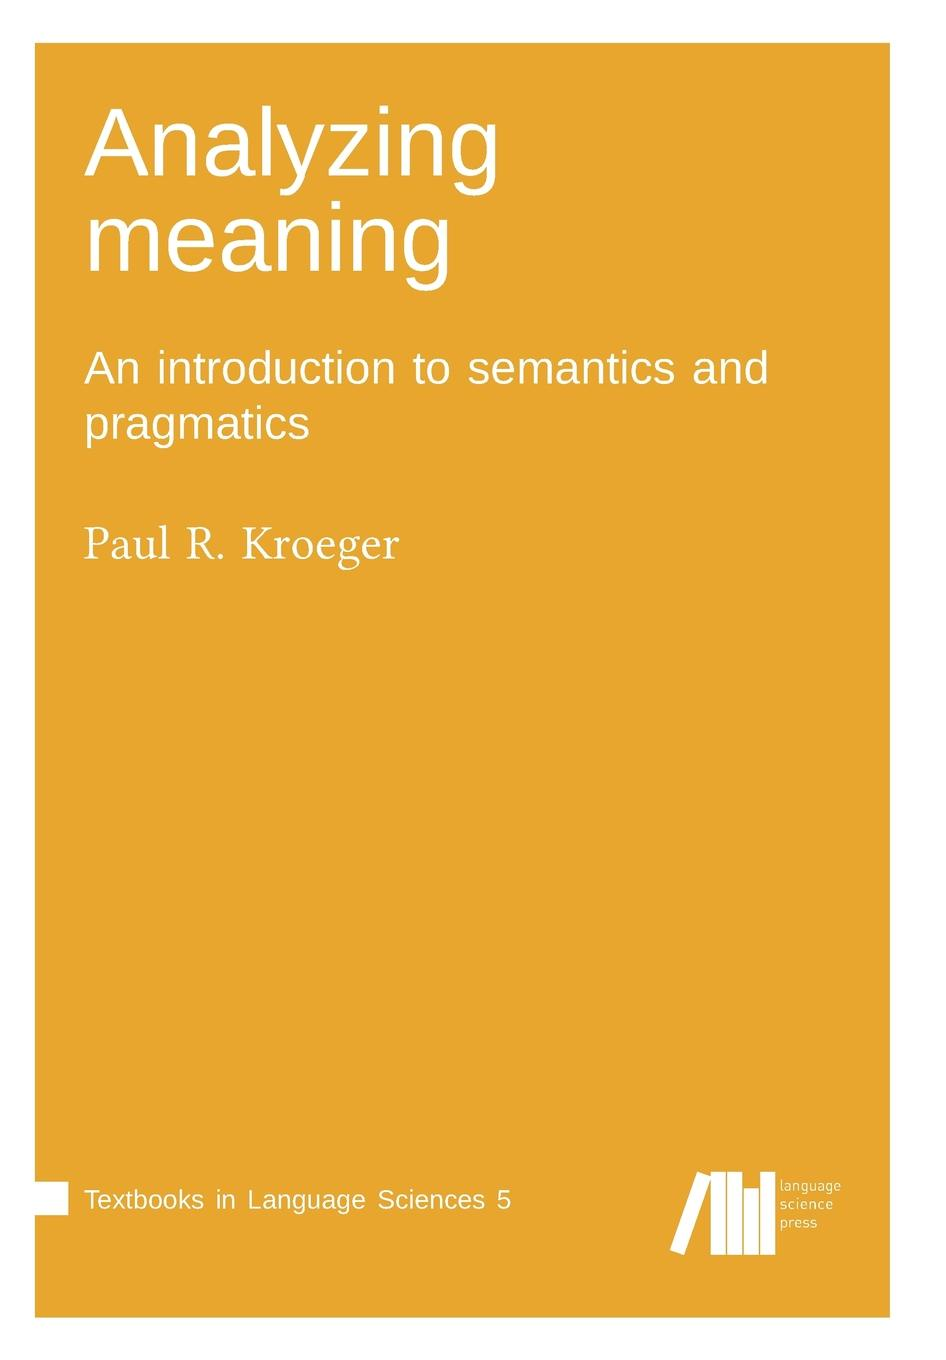 Paul R. Kroeger Analyzing meaning semantics